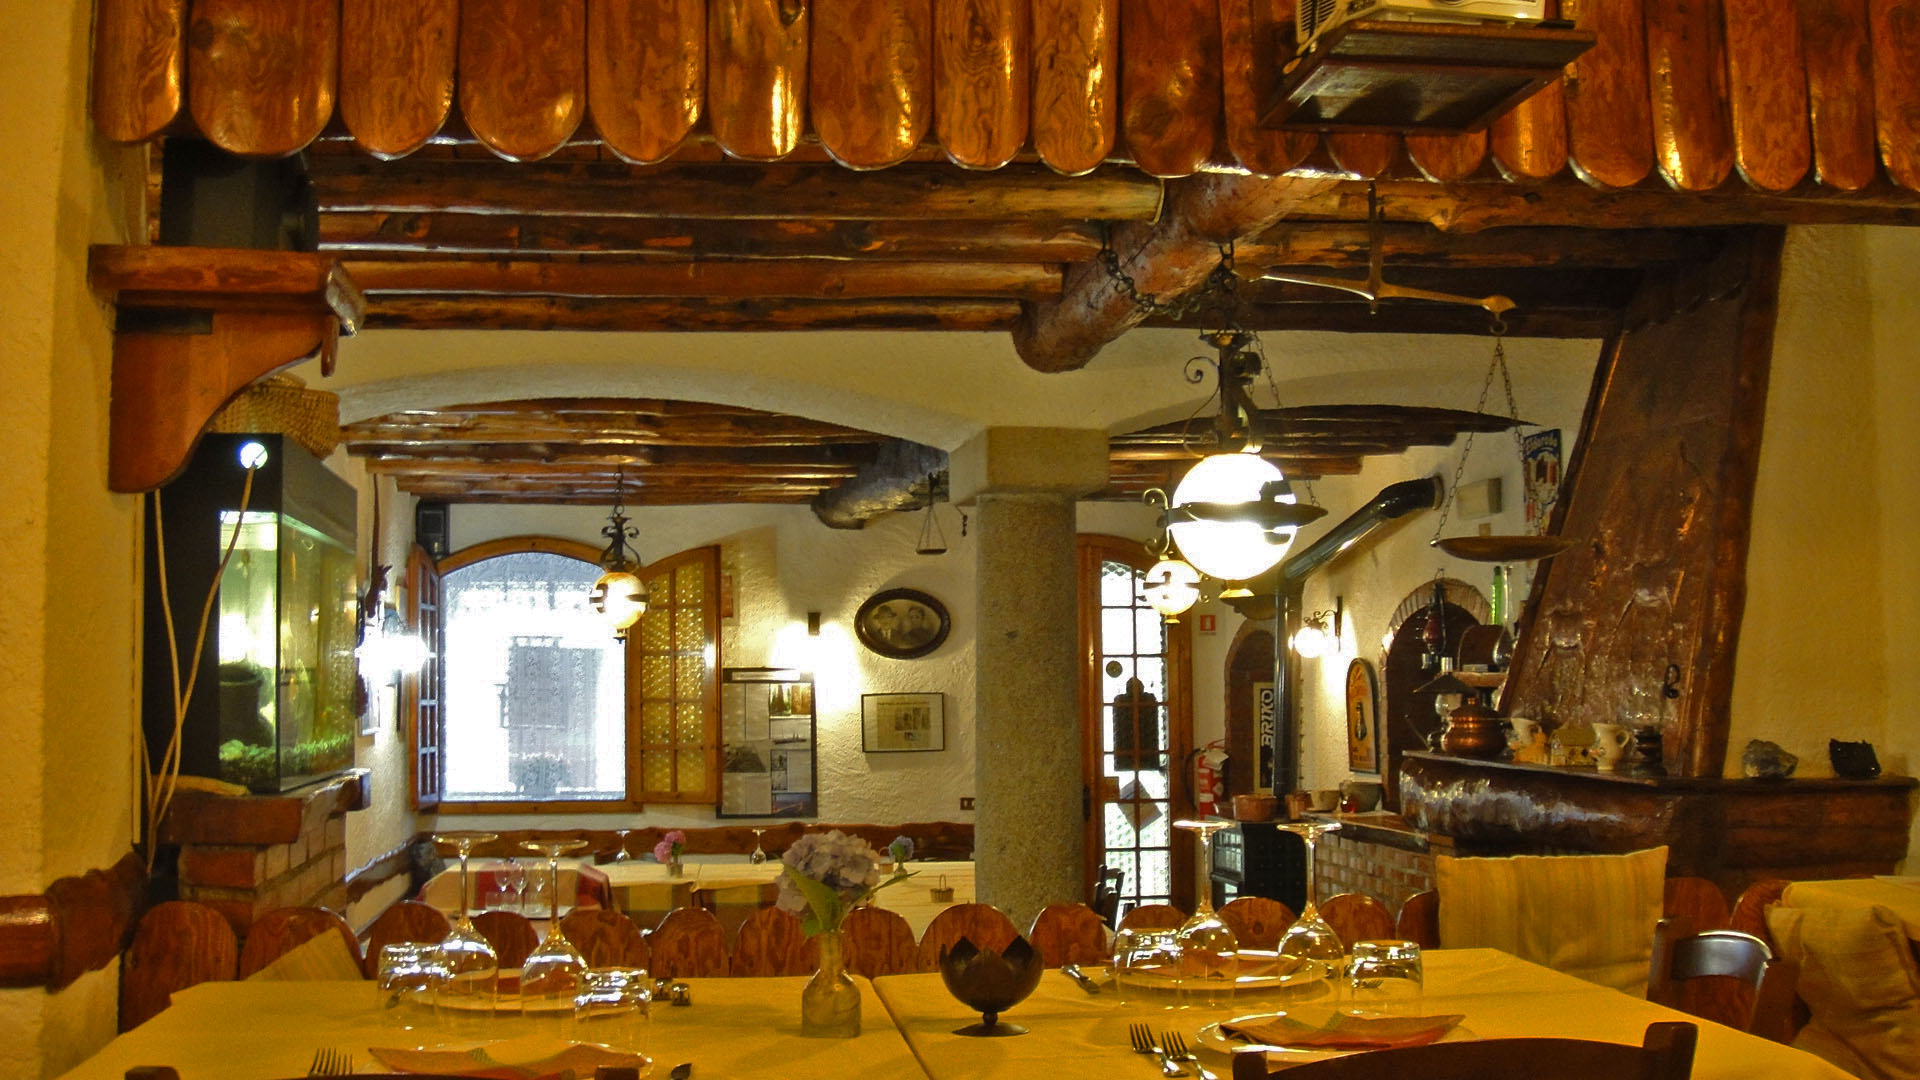 Things To Do in Northern-Italian, Restaurants in Northern-Italian